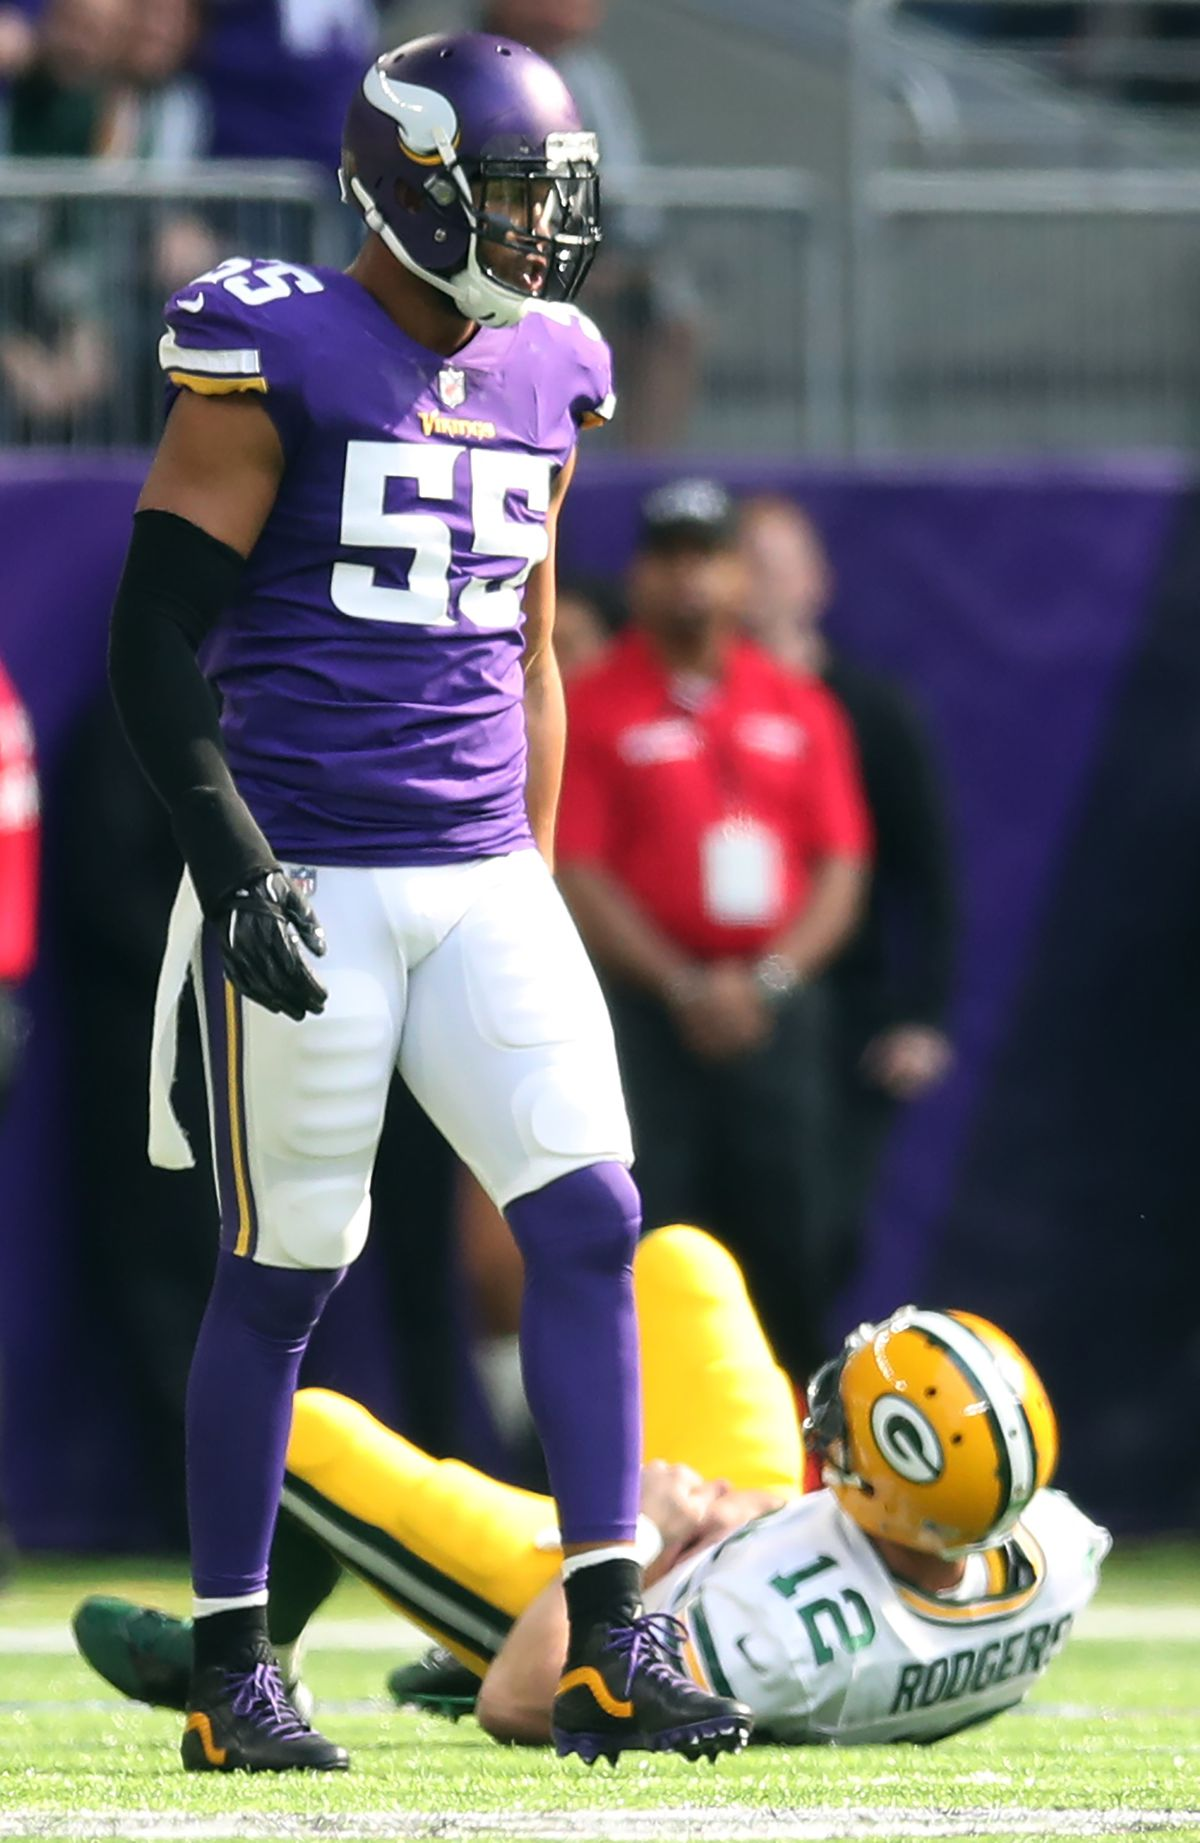 Minnesota Vikings outside linebacker Anthony Barr (55) waked away from Green Bay Packers quarterback Aaron Rodgers (12) after he tackled him in the first quarter at U.S Bank Stadium Sunday October 15,2017 in Minneapolis, MN. ] JERRY HOLT • jerry.holt